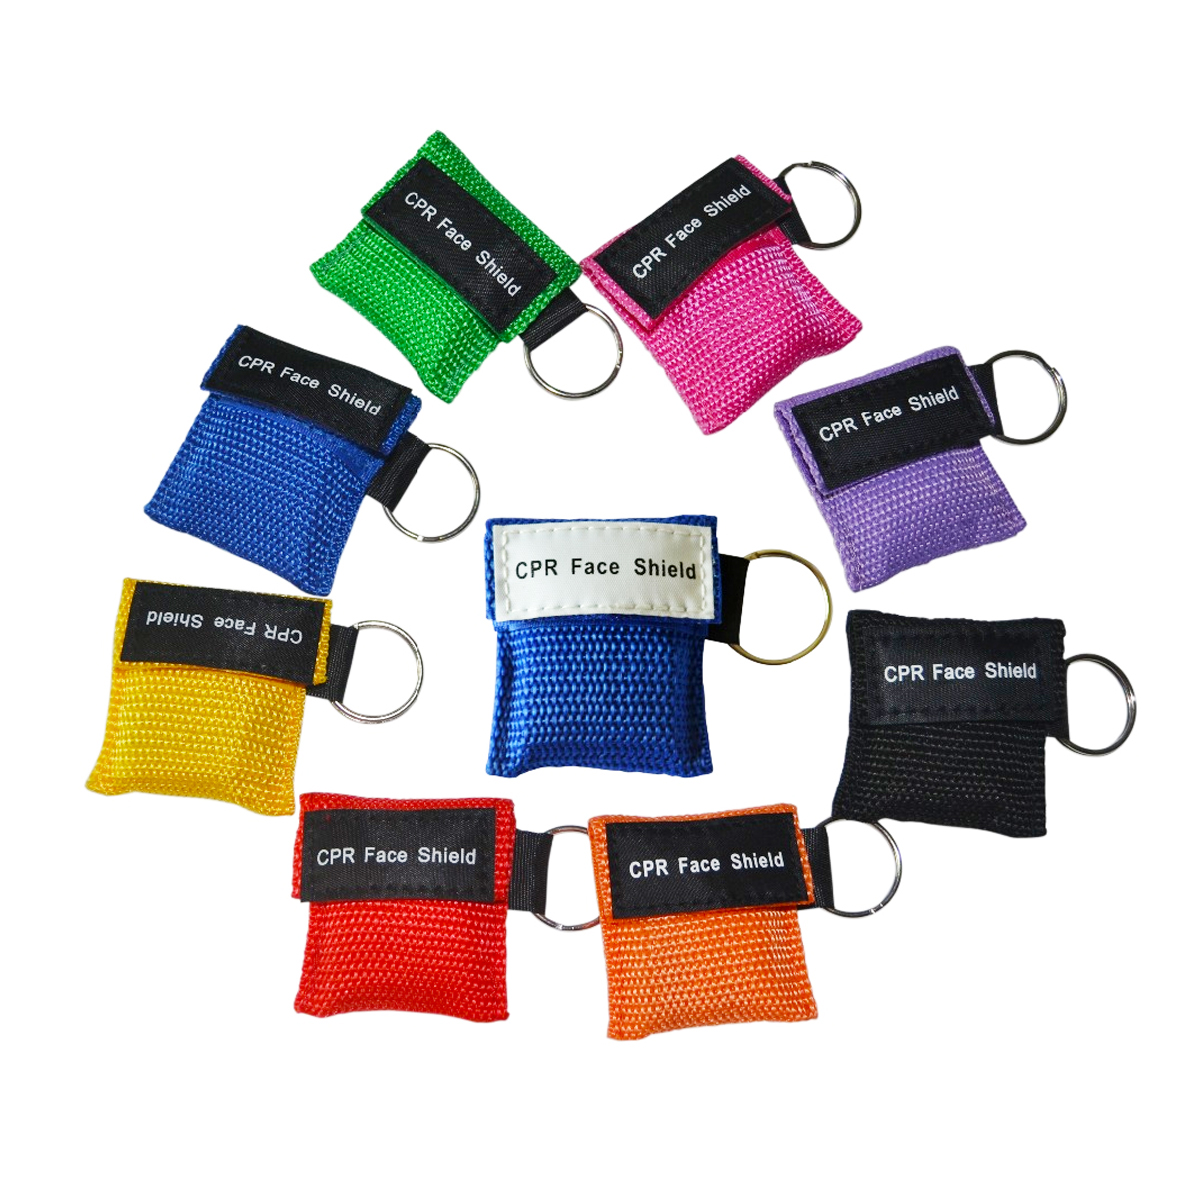 50Pcs/Lot CRP Mask Mouth To Mouth Breathing CE FDA Approved Reusable Rescue Keychain CPR Keyring 8 Colors 50pcs lot g20n40l to 252 251